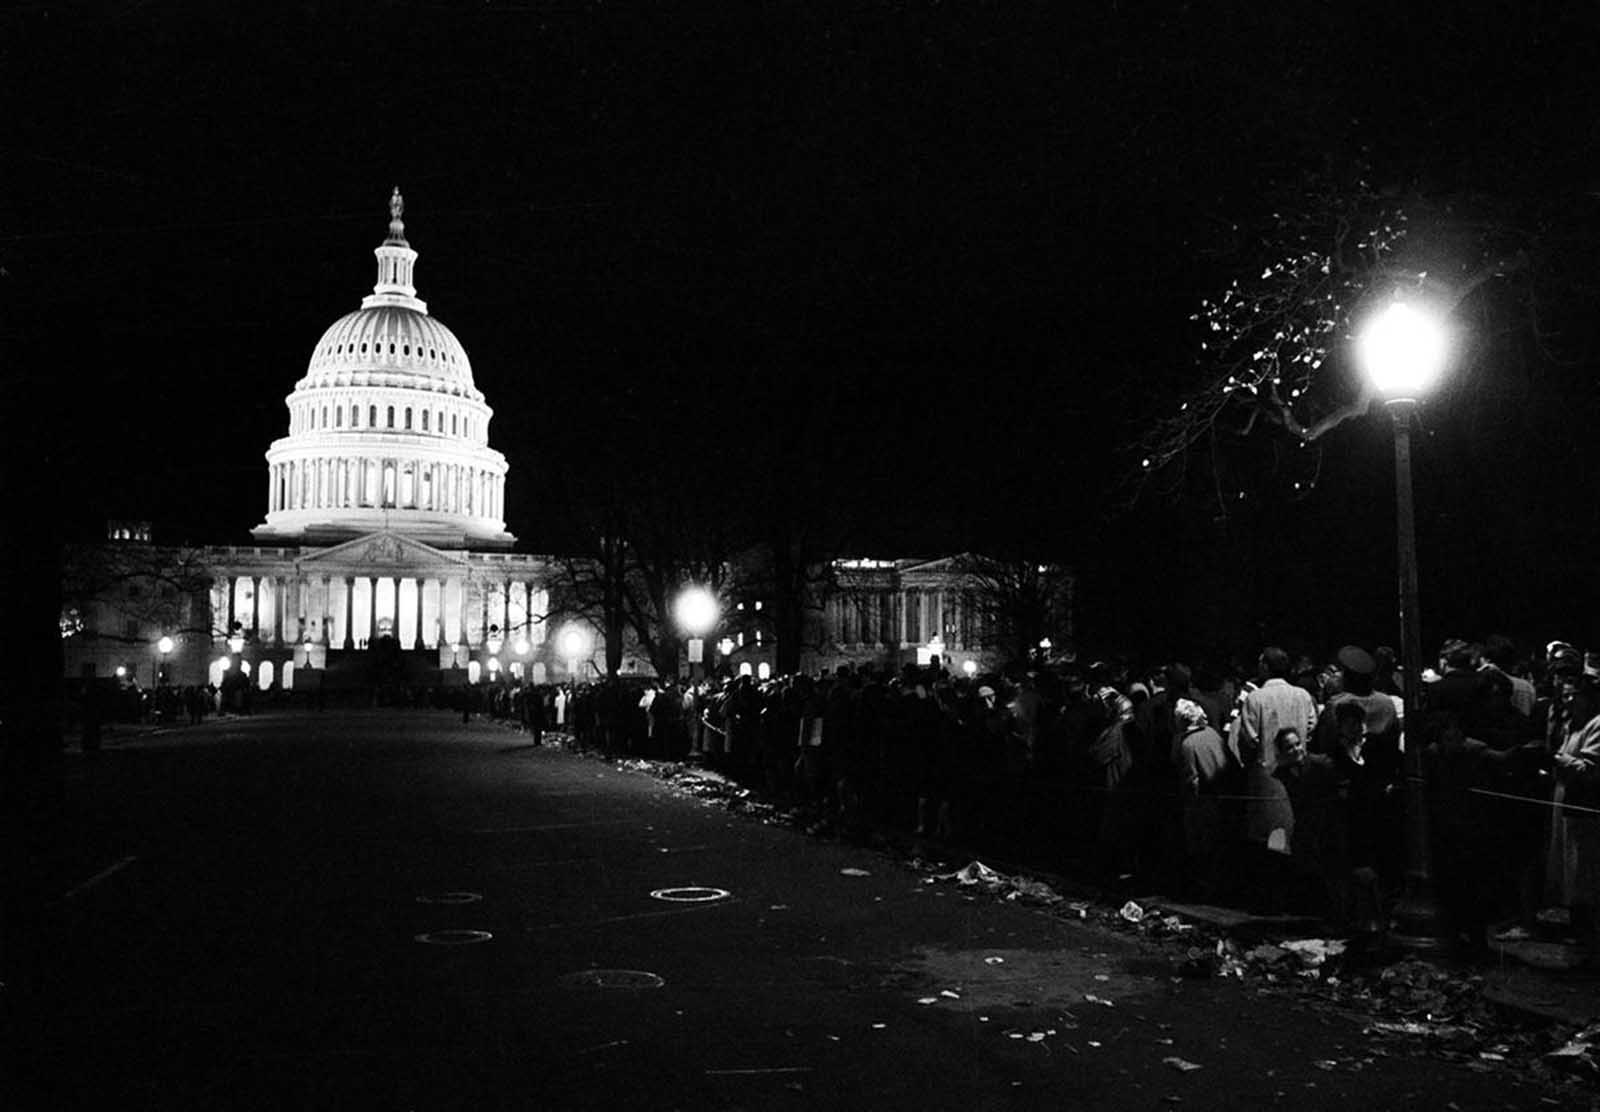 With the illuminated U.S. Capitol in the background, mourners form an endless line which lasted through the night, to pay their respects to the slain President John F. Kennedy, in Washington, District of Columbia, on November 24, 1963.